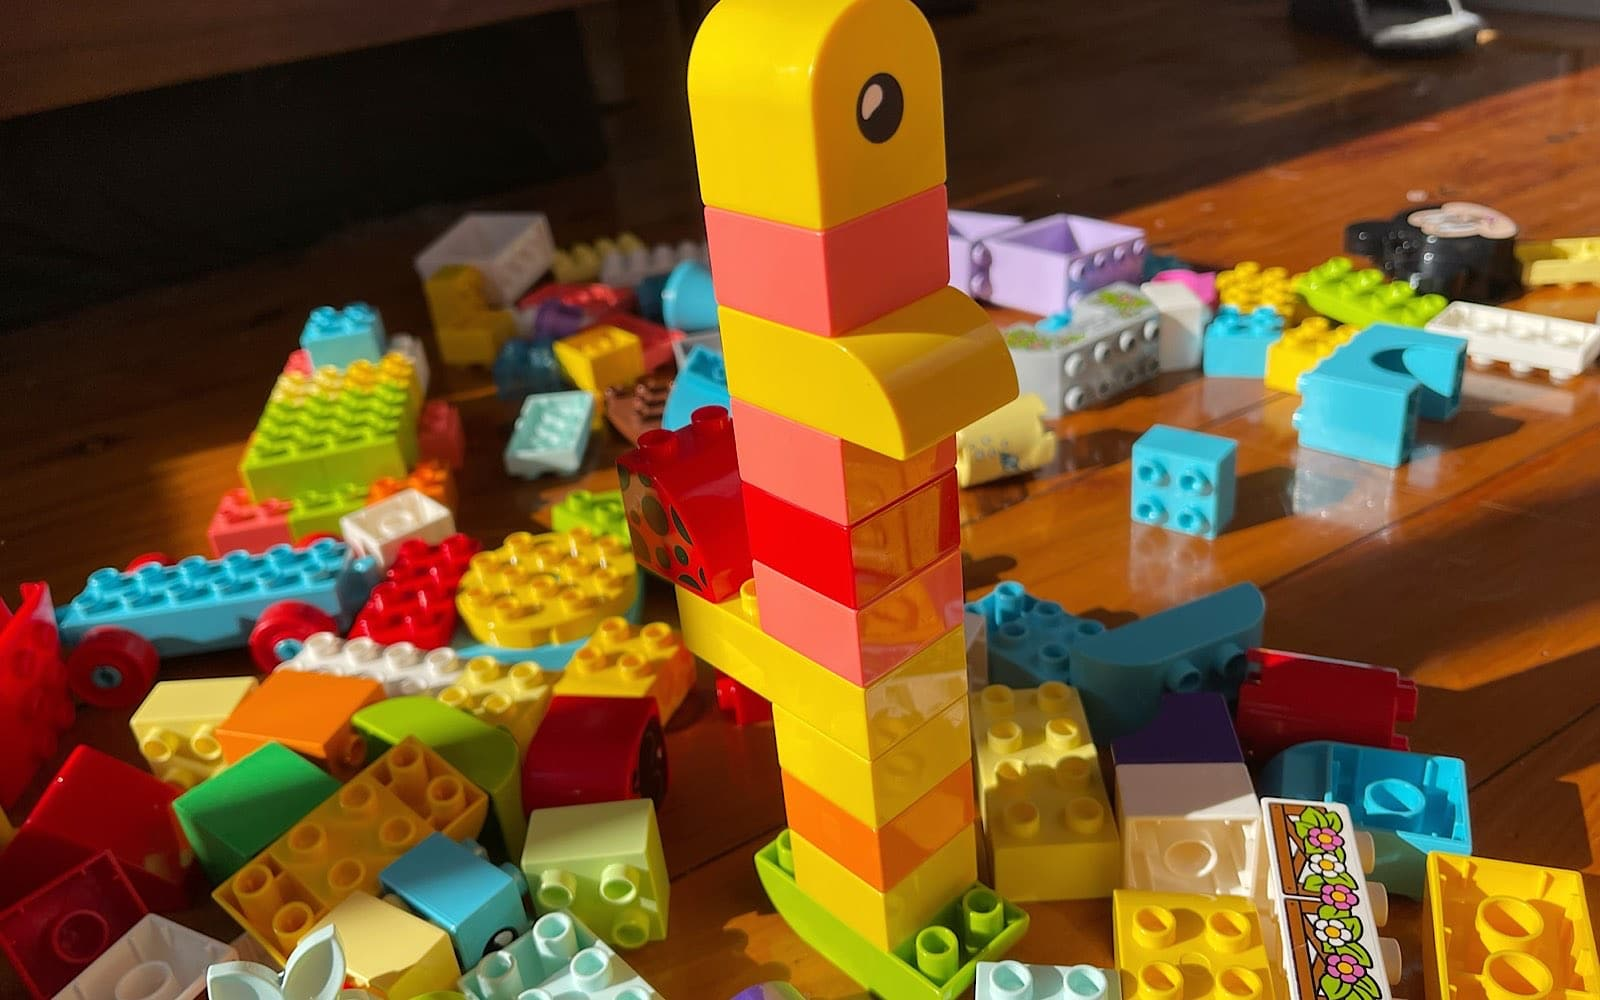 You can make things with Lego and Duplo using Brickit